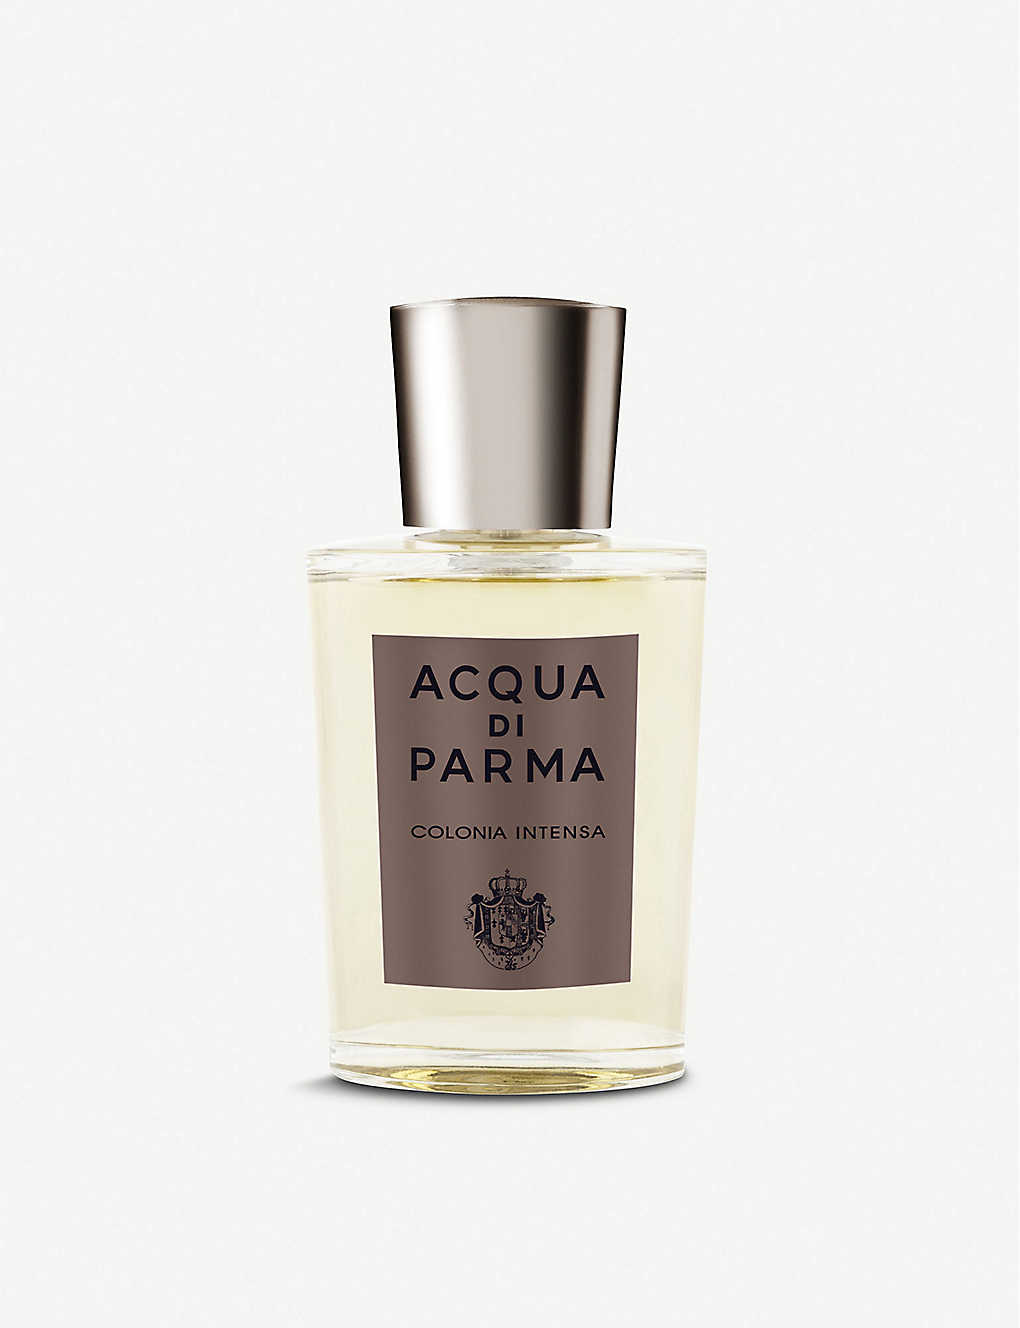 ACQUA DI PARMA: Colonia Intensa eau de cologne spray 50ml